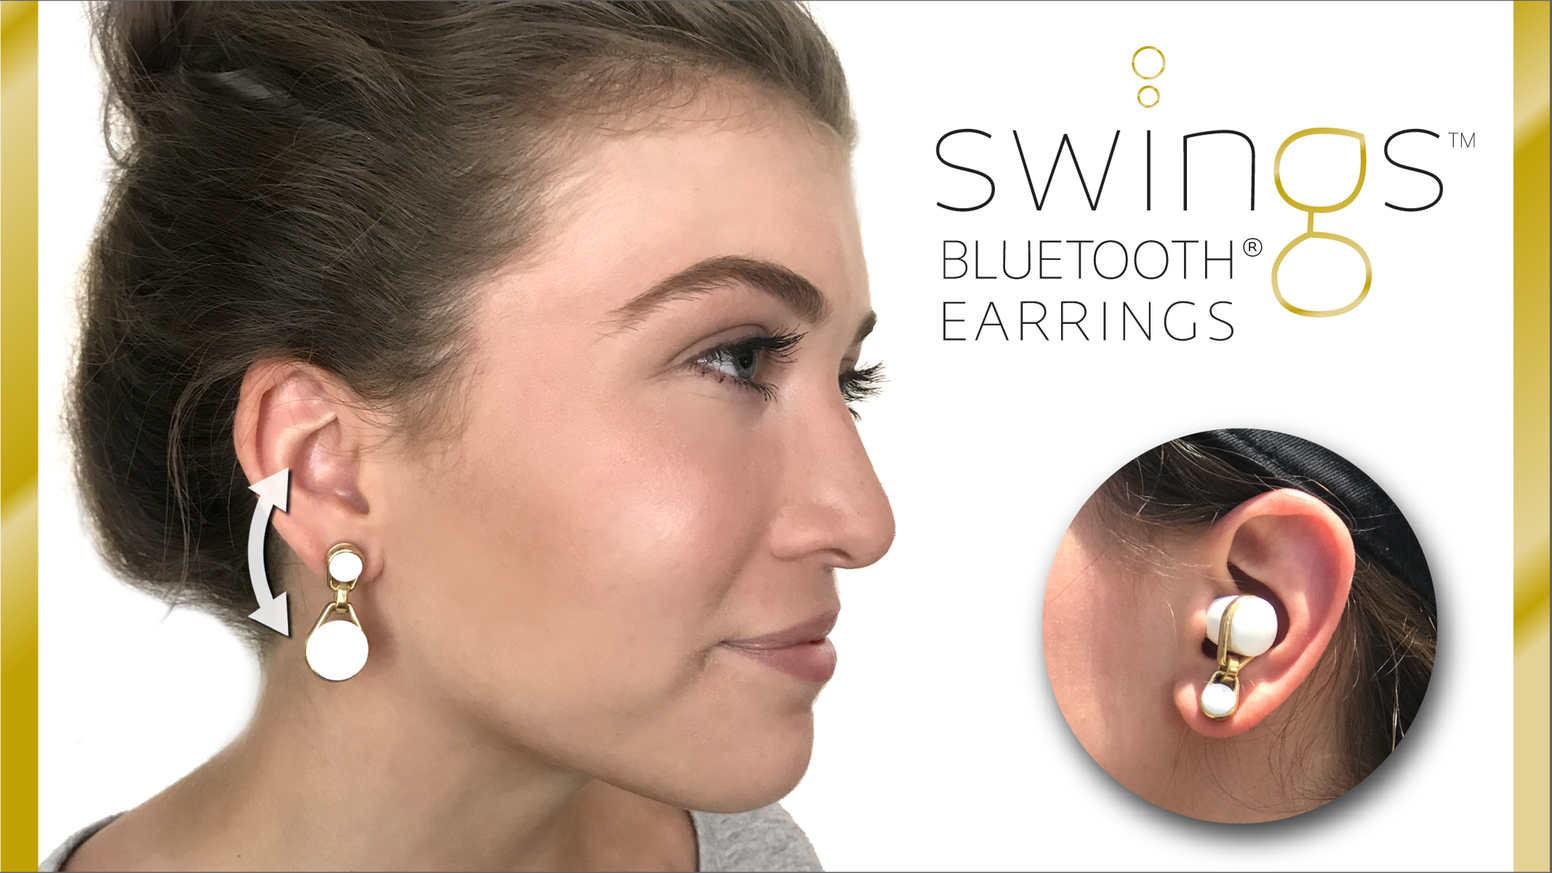 Bluetooth, earring, stud, Bluetooth earring, women, Scandi Electronics, Swings, news, mobile, startup,